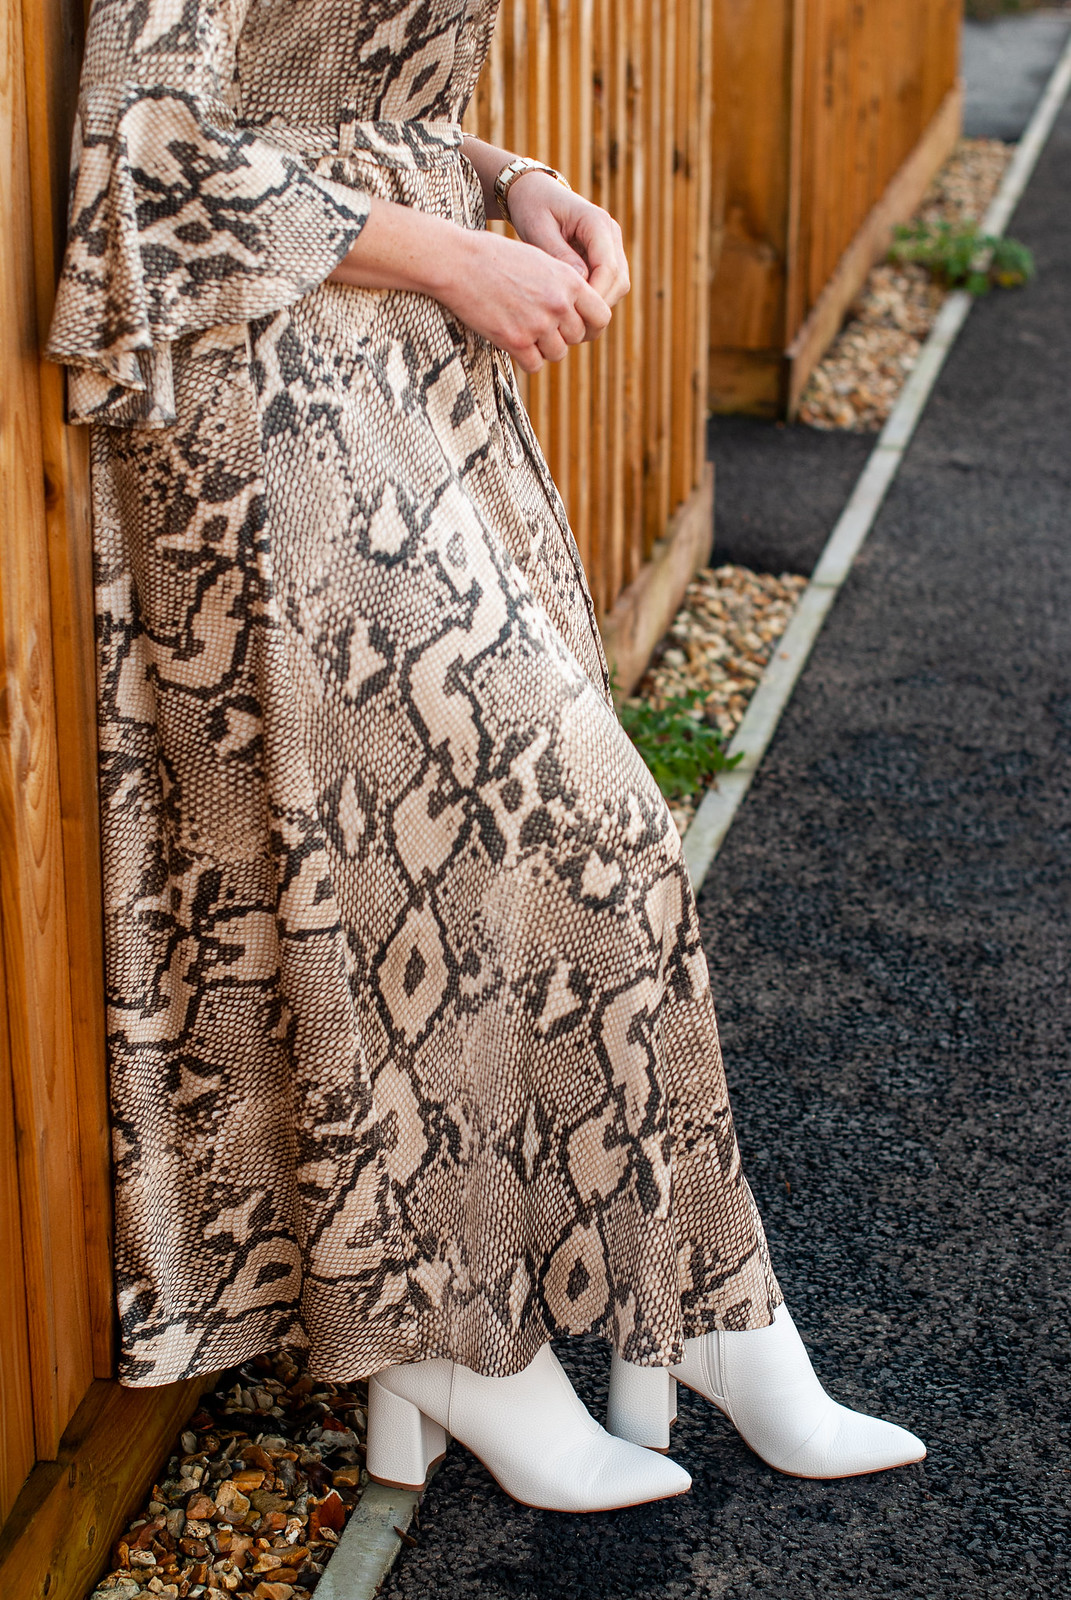 What to Wear for Christmas: A Snakeskin Maxi Dress With White Boots | Not Dressed As Lamb, over 40 style blog